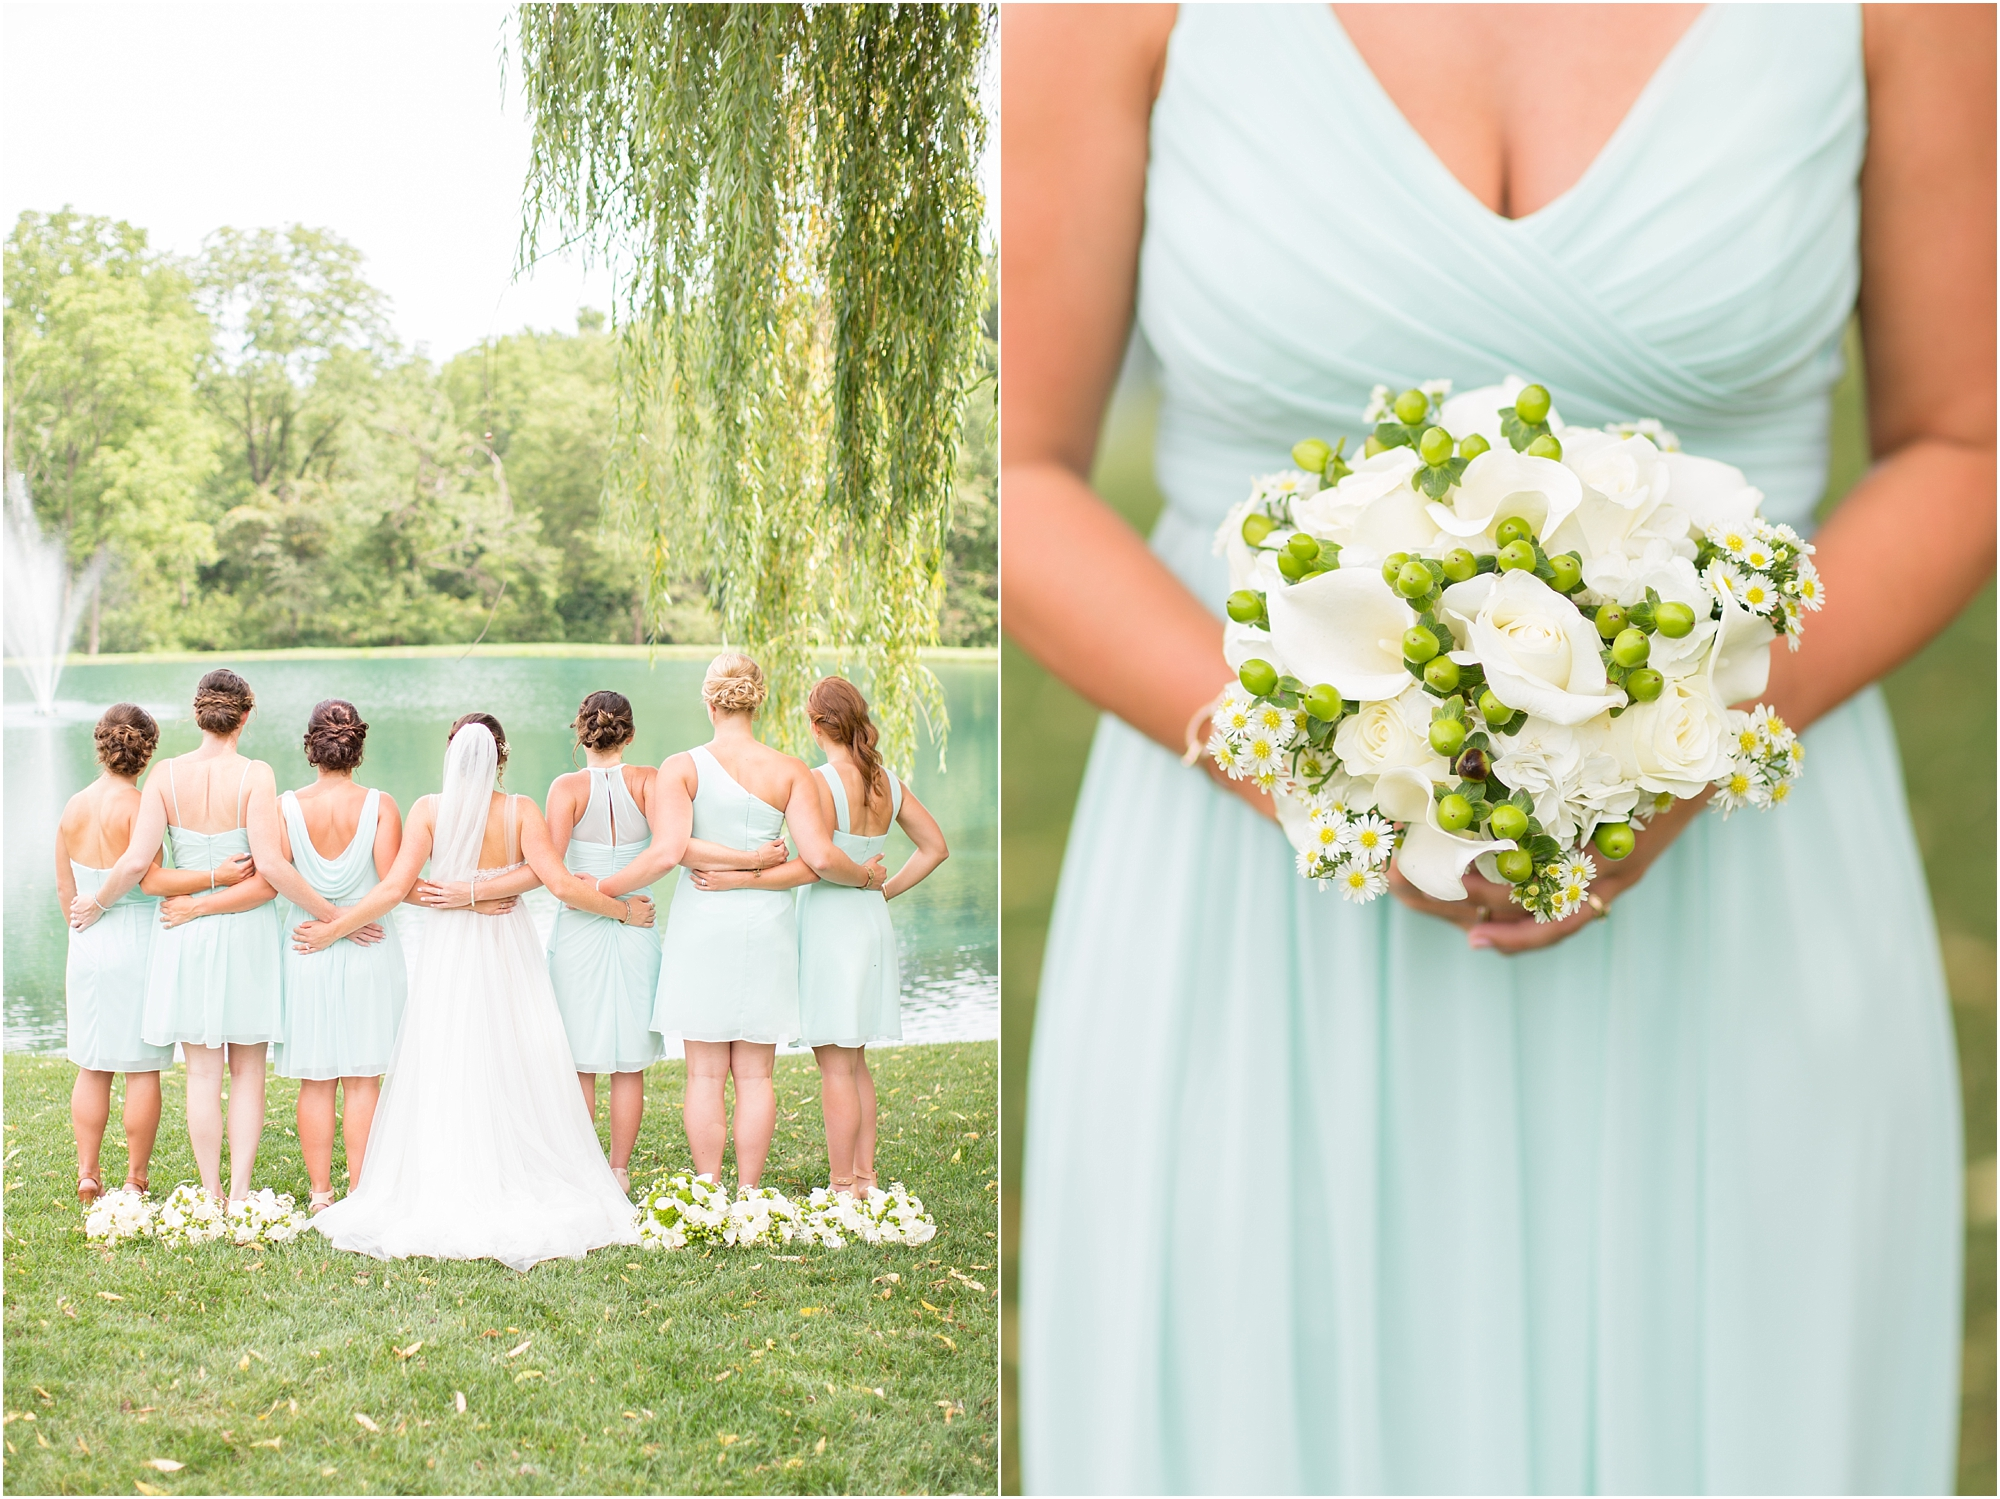 Herndon 2-Bridal Party-236_anna grace photography baltimore maryland wedding photographer pond view farm photo.jpg